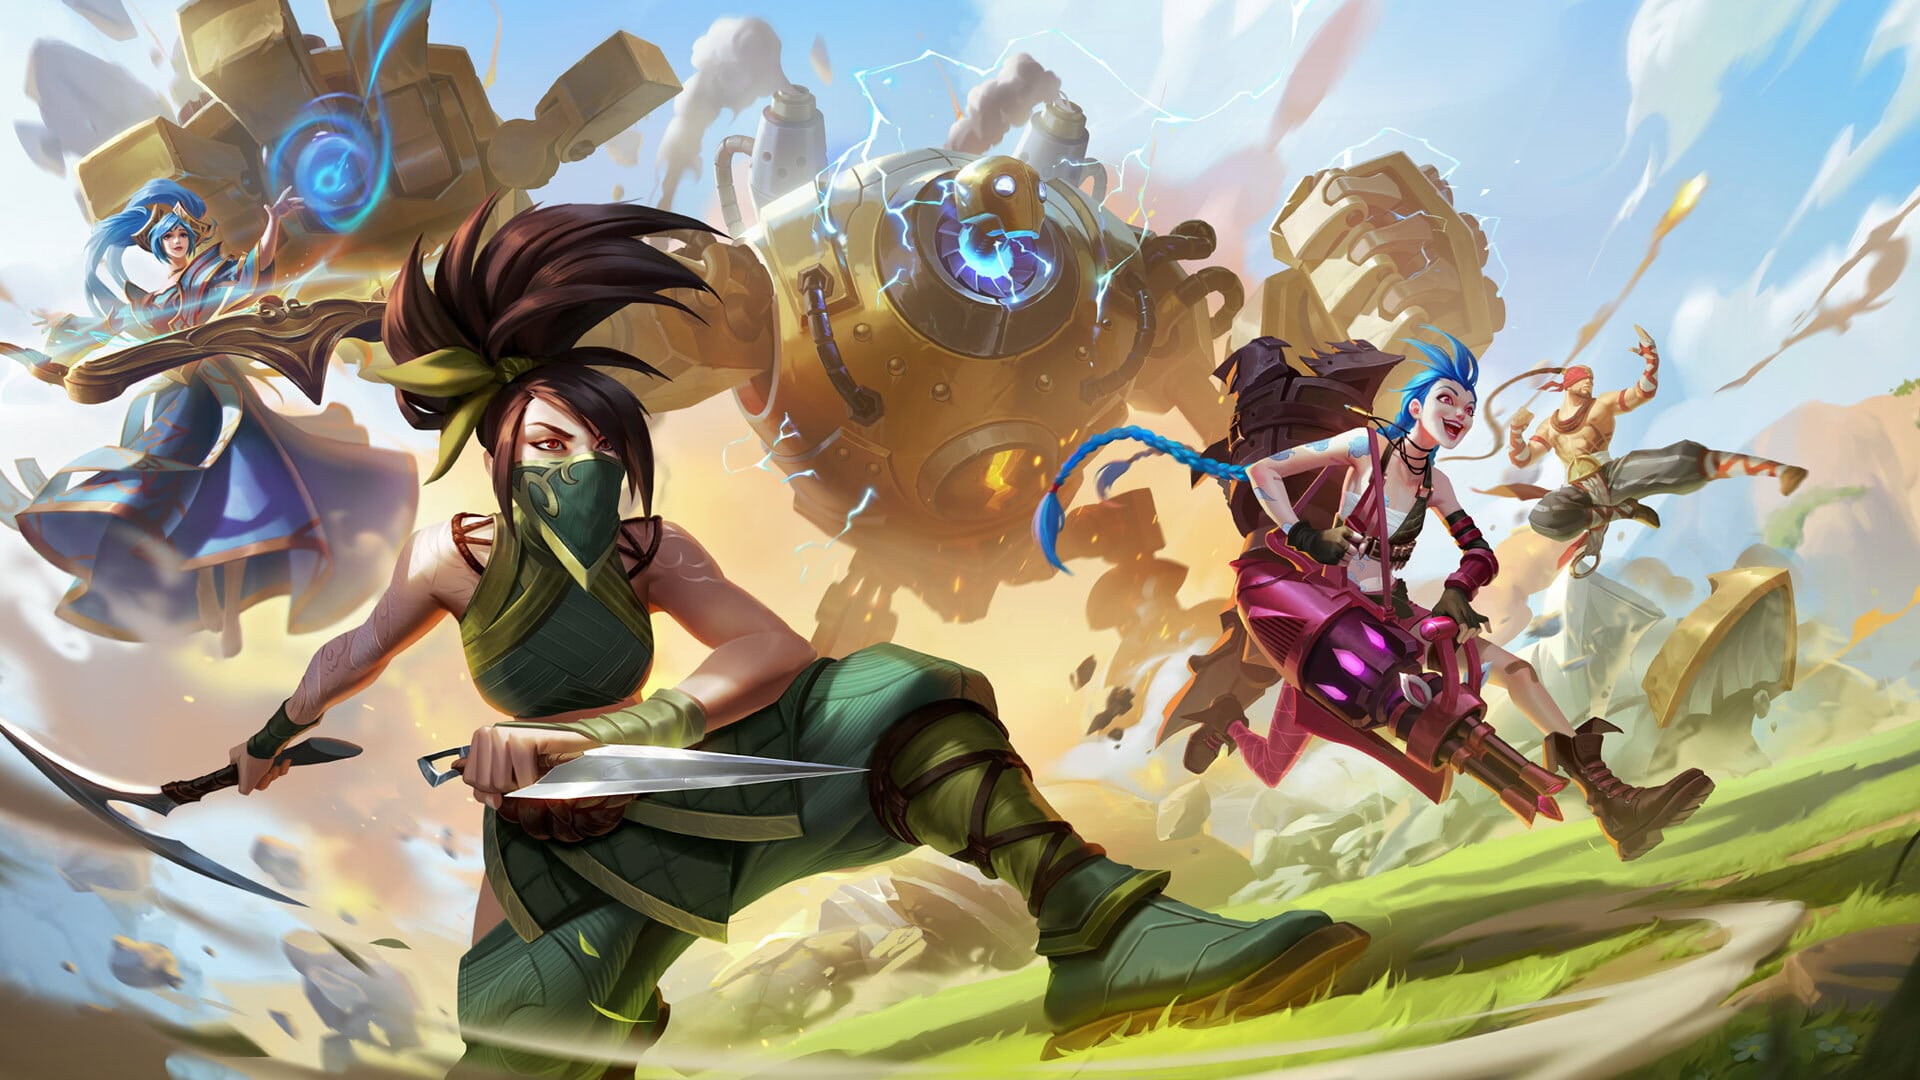 League of Legends animated series Arcane